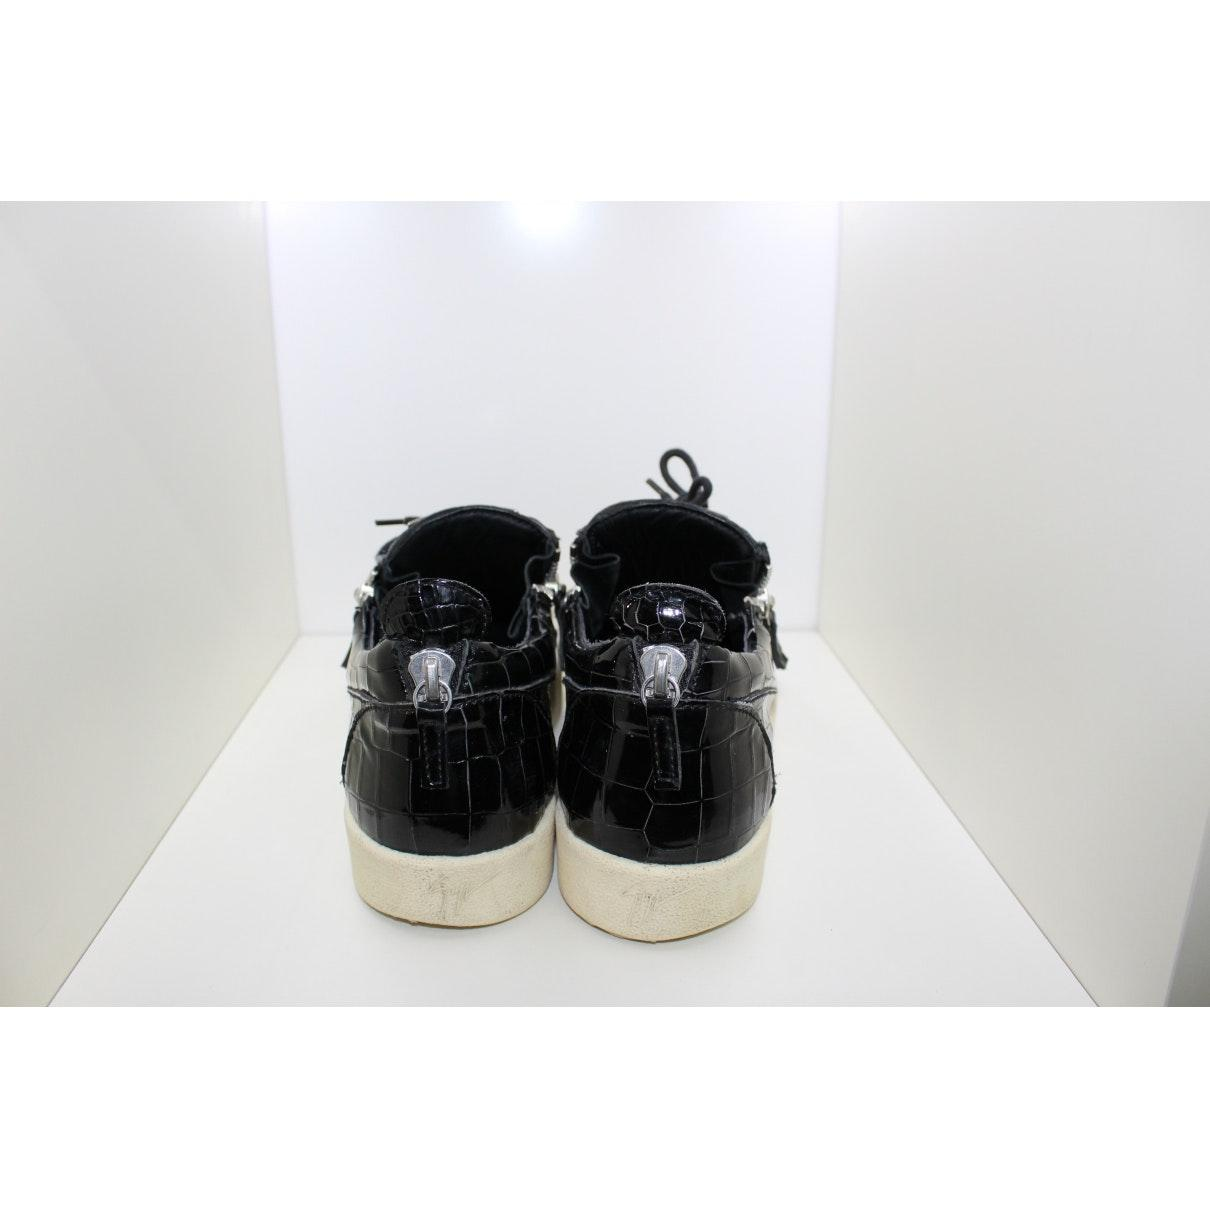 Giuseppe Zanotti n Black Patent Leather Trainers for Men